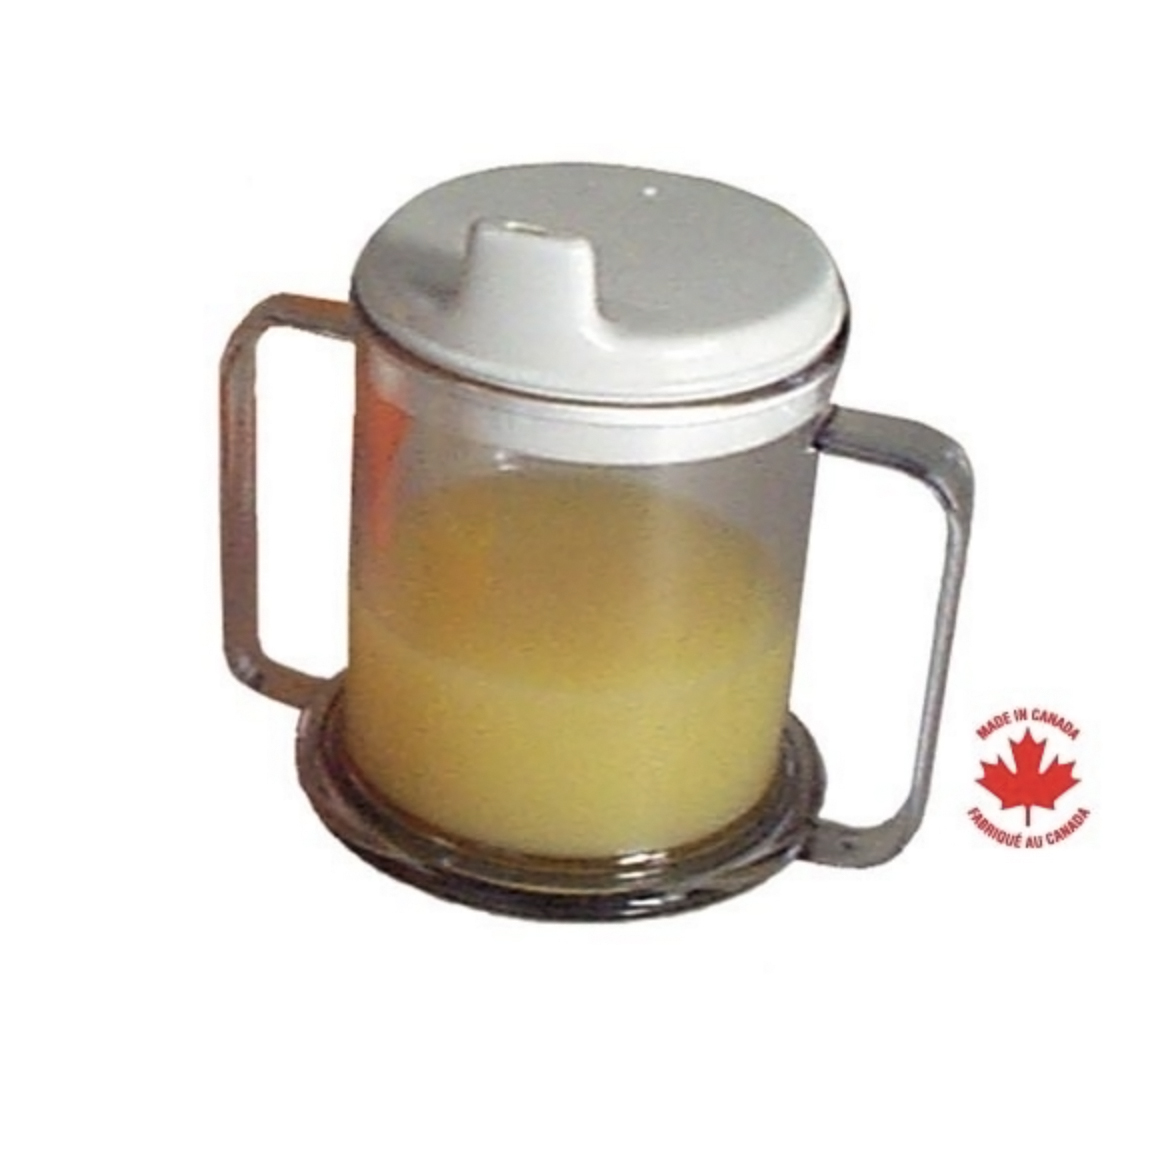 Replacement Lid for Double Handled Mug